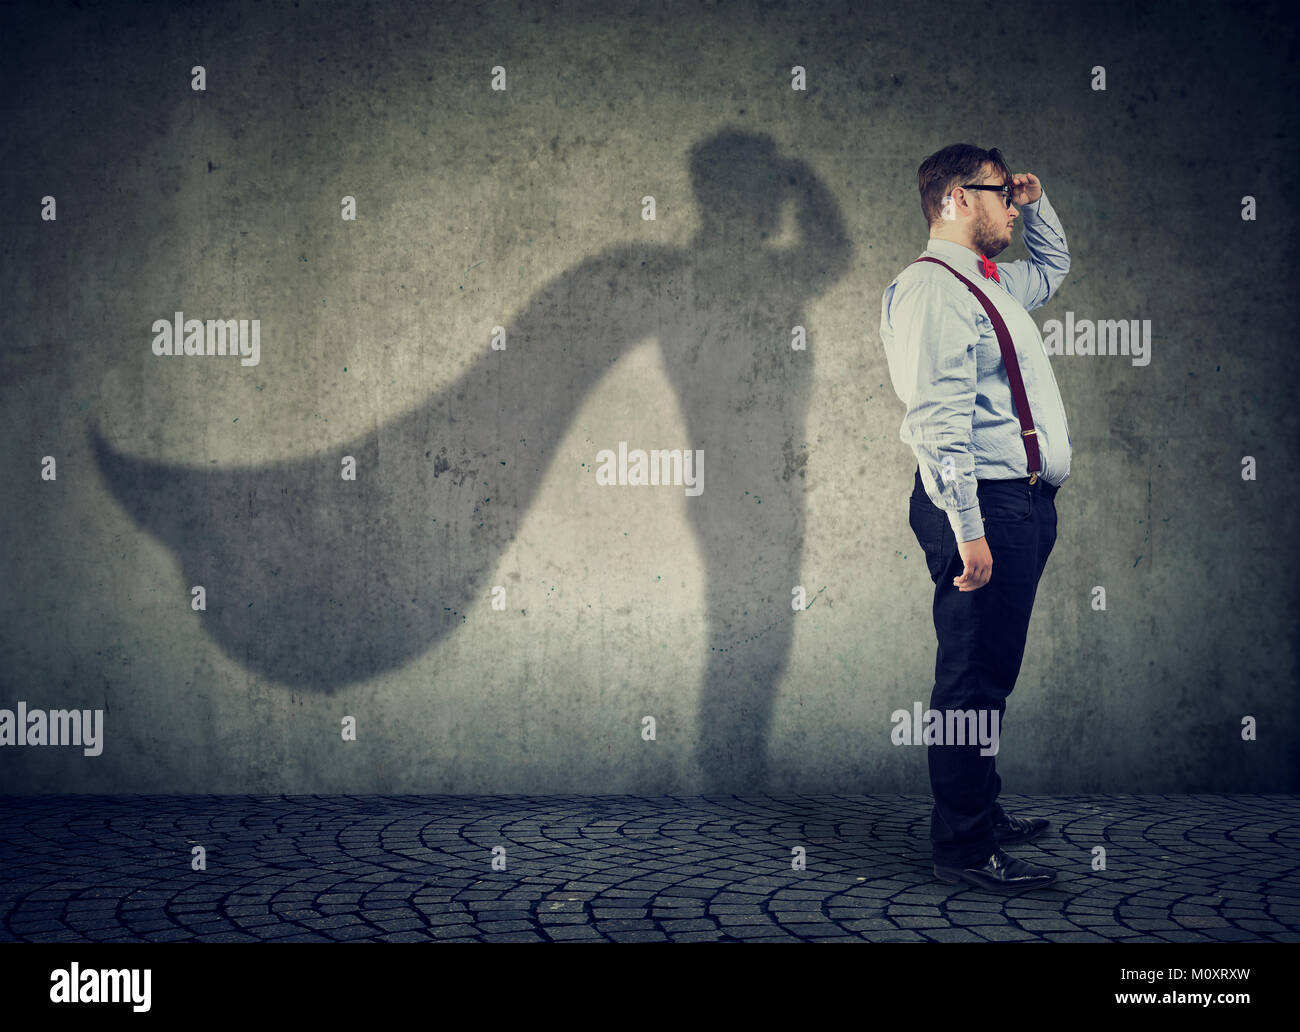 Side view of a chubby man imagining to be super hero looking aspired. - Stock Image